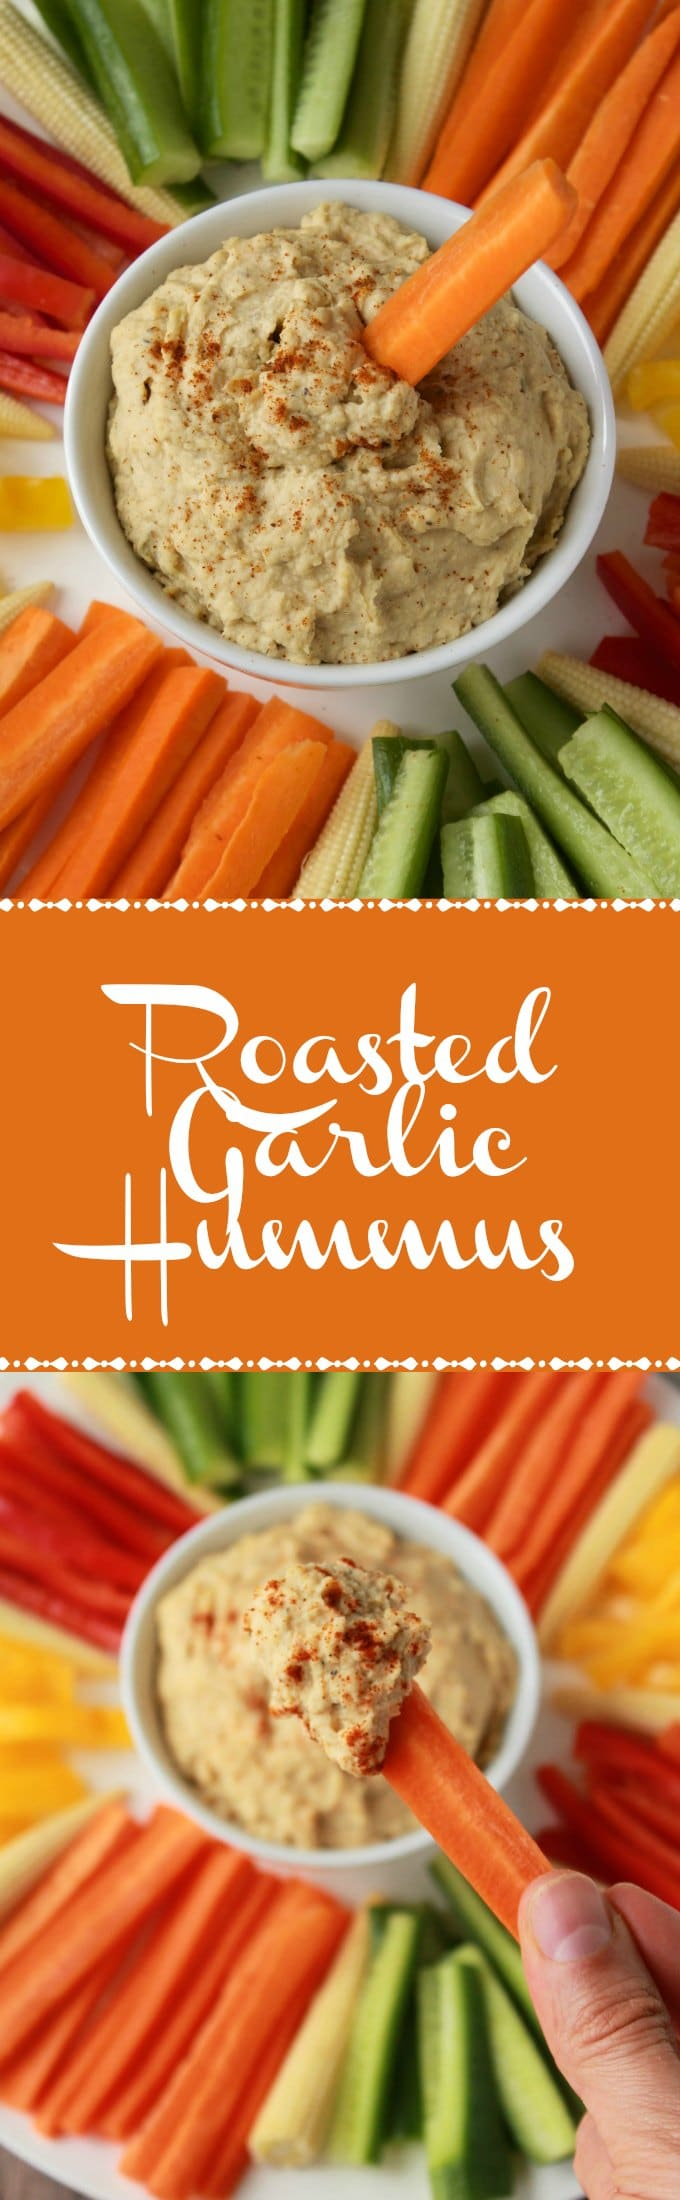 Creamy and Delicious Roasted Garlic Hummus. Vegan and Gluten-Free. Ideal as an appetizer or dip! #vegan #lovingitvegan #hummus #roastedgarlic #dip #glutenfree